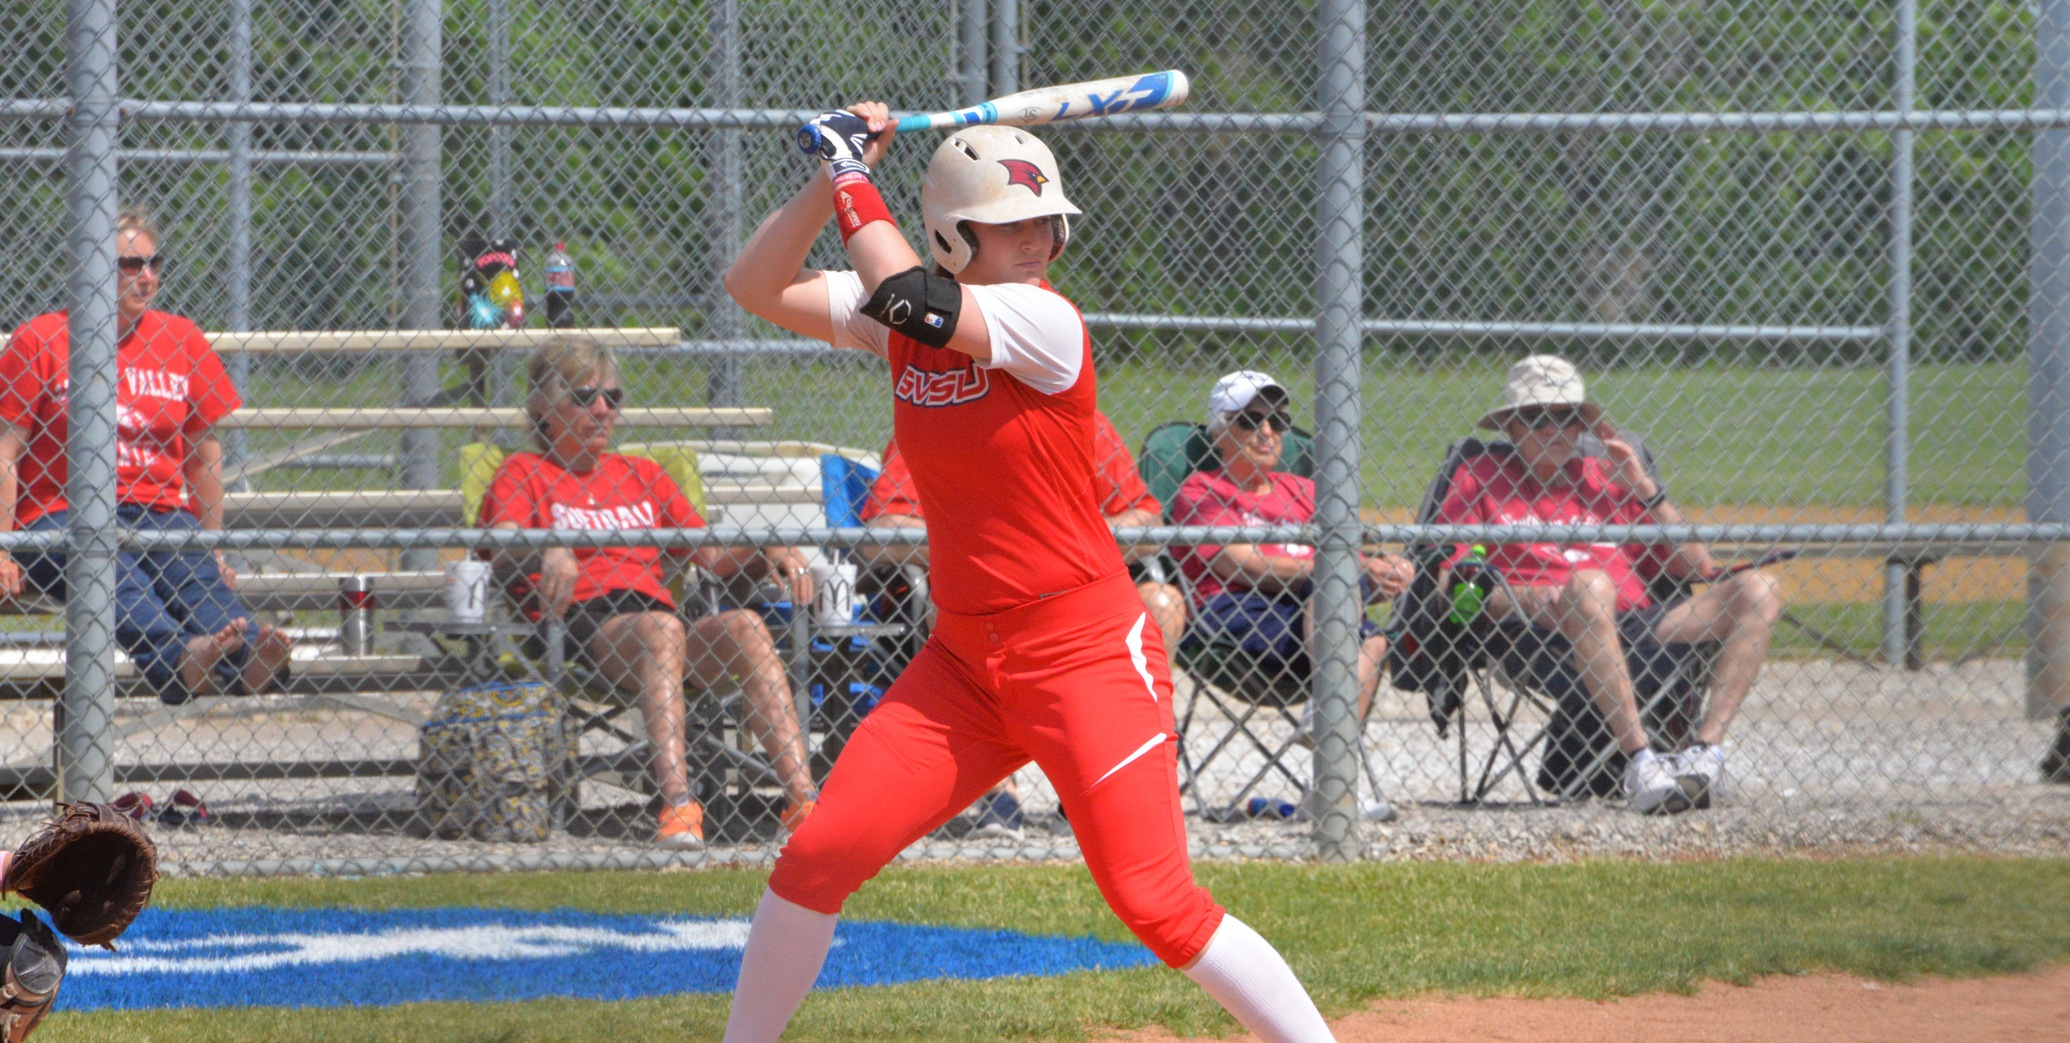 Courtney Reeves drilled a walk-off HR in the 8th inning for the SVSU victory...